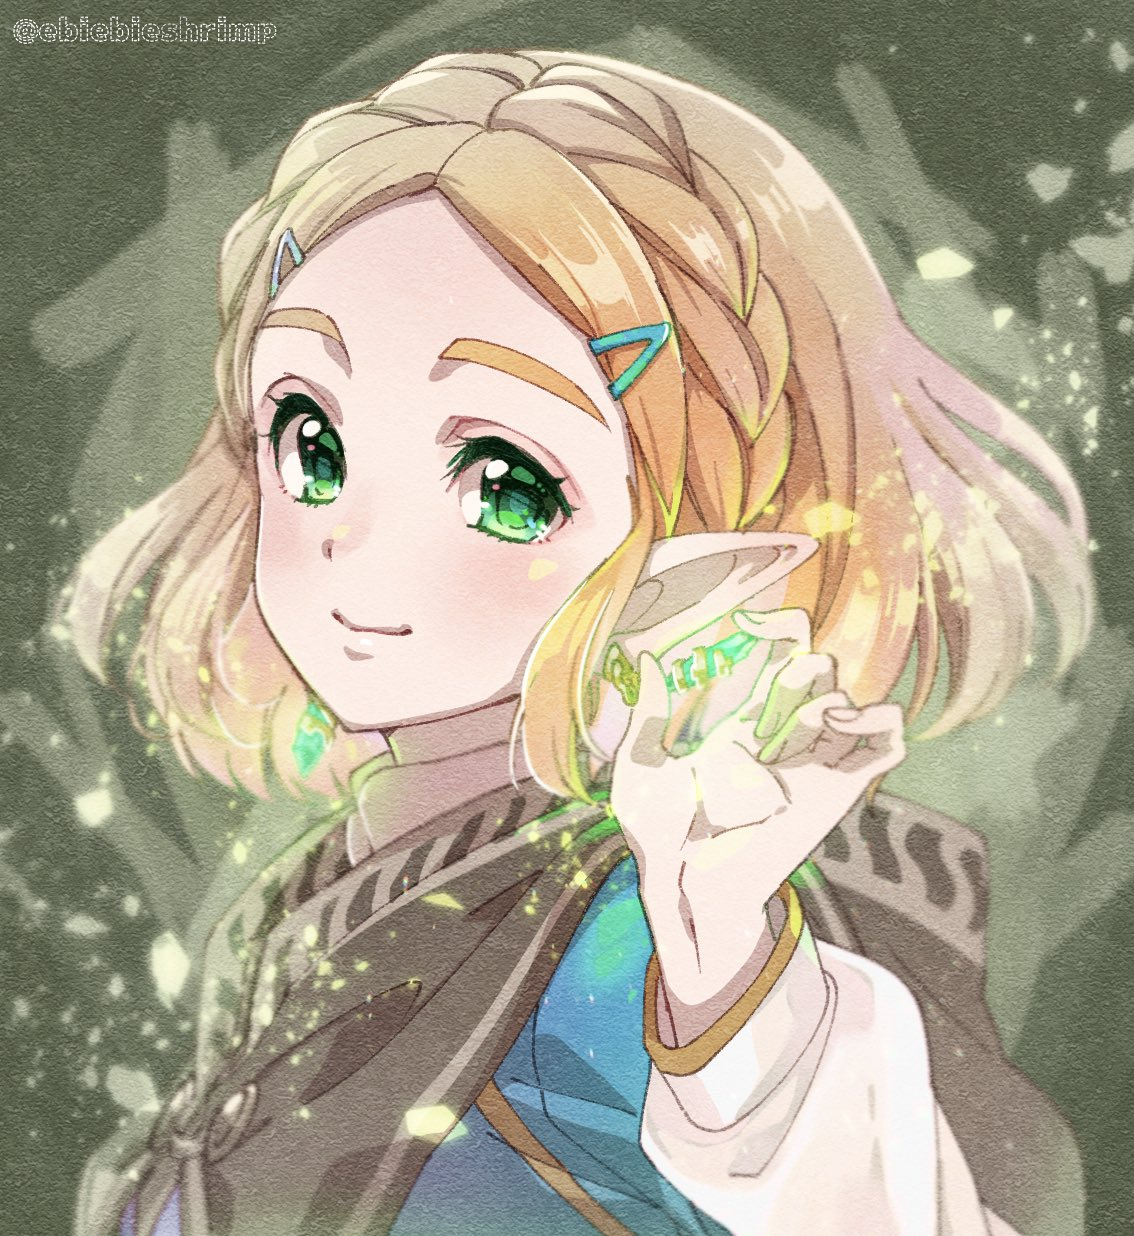 1girl blonde_hair blush braid brown_cape cape closed_mouth colored_eyelashes crown_braid emerald_(gemstone) forehead glowing green_eyes hair_ornament hairclip hand_up highres holding holding_gemstone hood hood_down hooded_cape long_sleeves looking_at_viewer pointy_ears princess_zelda short_hair shuri_(84k) sidelocks smile solo the_legend_of_zelda the_legend_of_zelda:_breath_of_the_wild the_legend_of_zelda:_breath_of_the_wild_2 thick_eyebrows upper_body